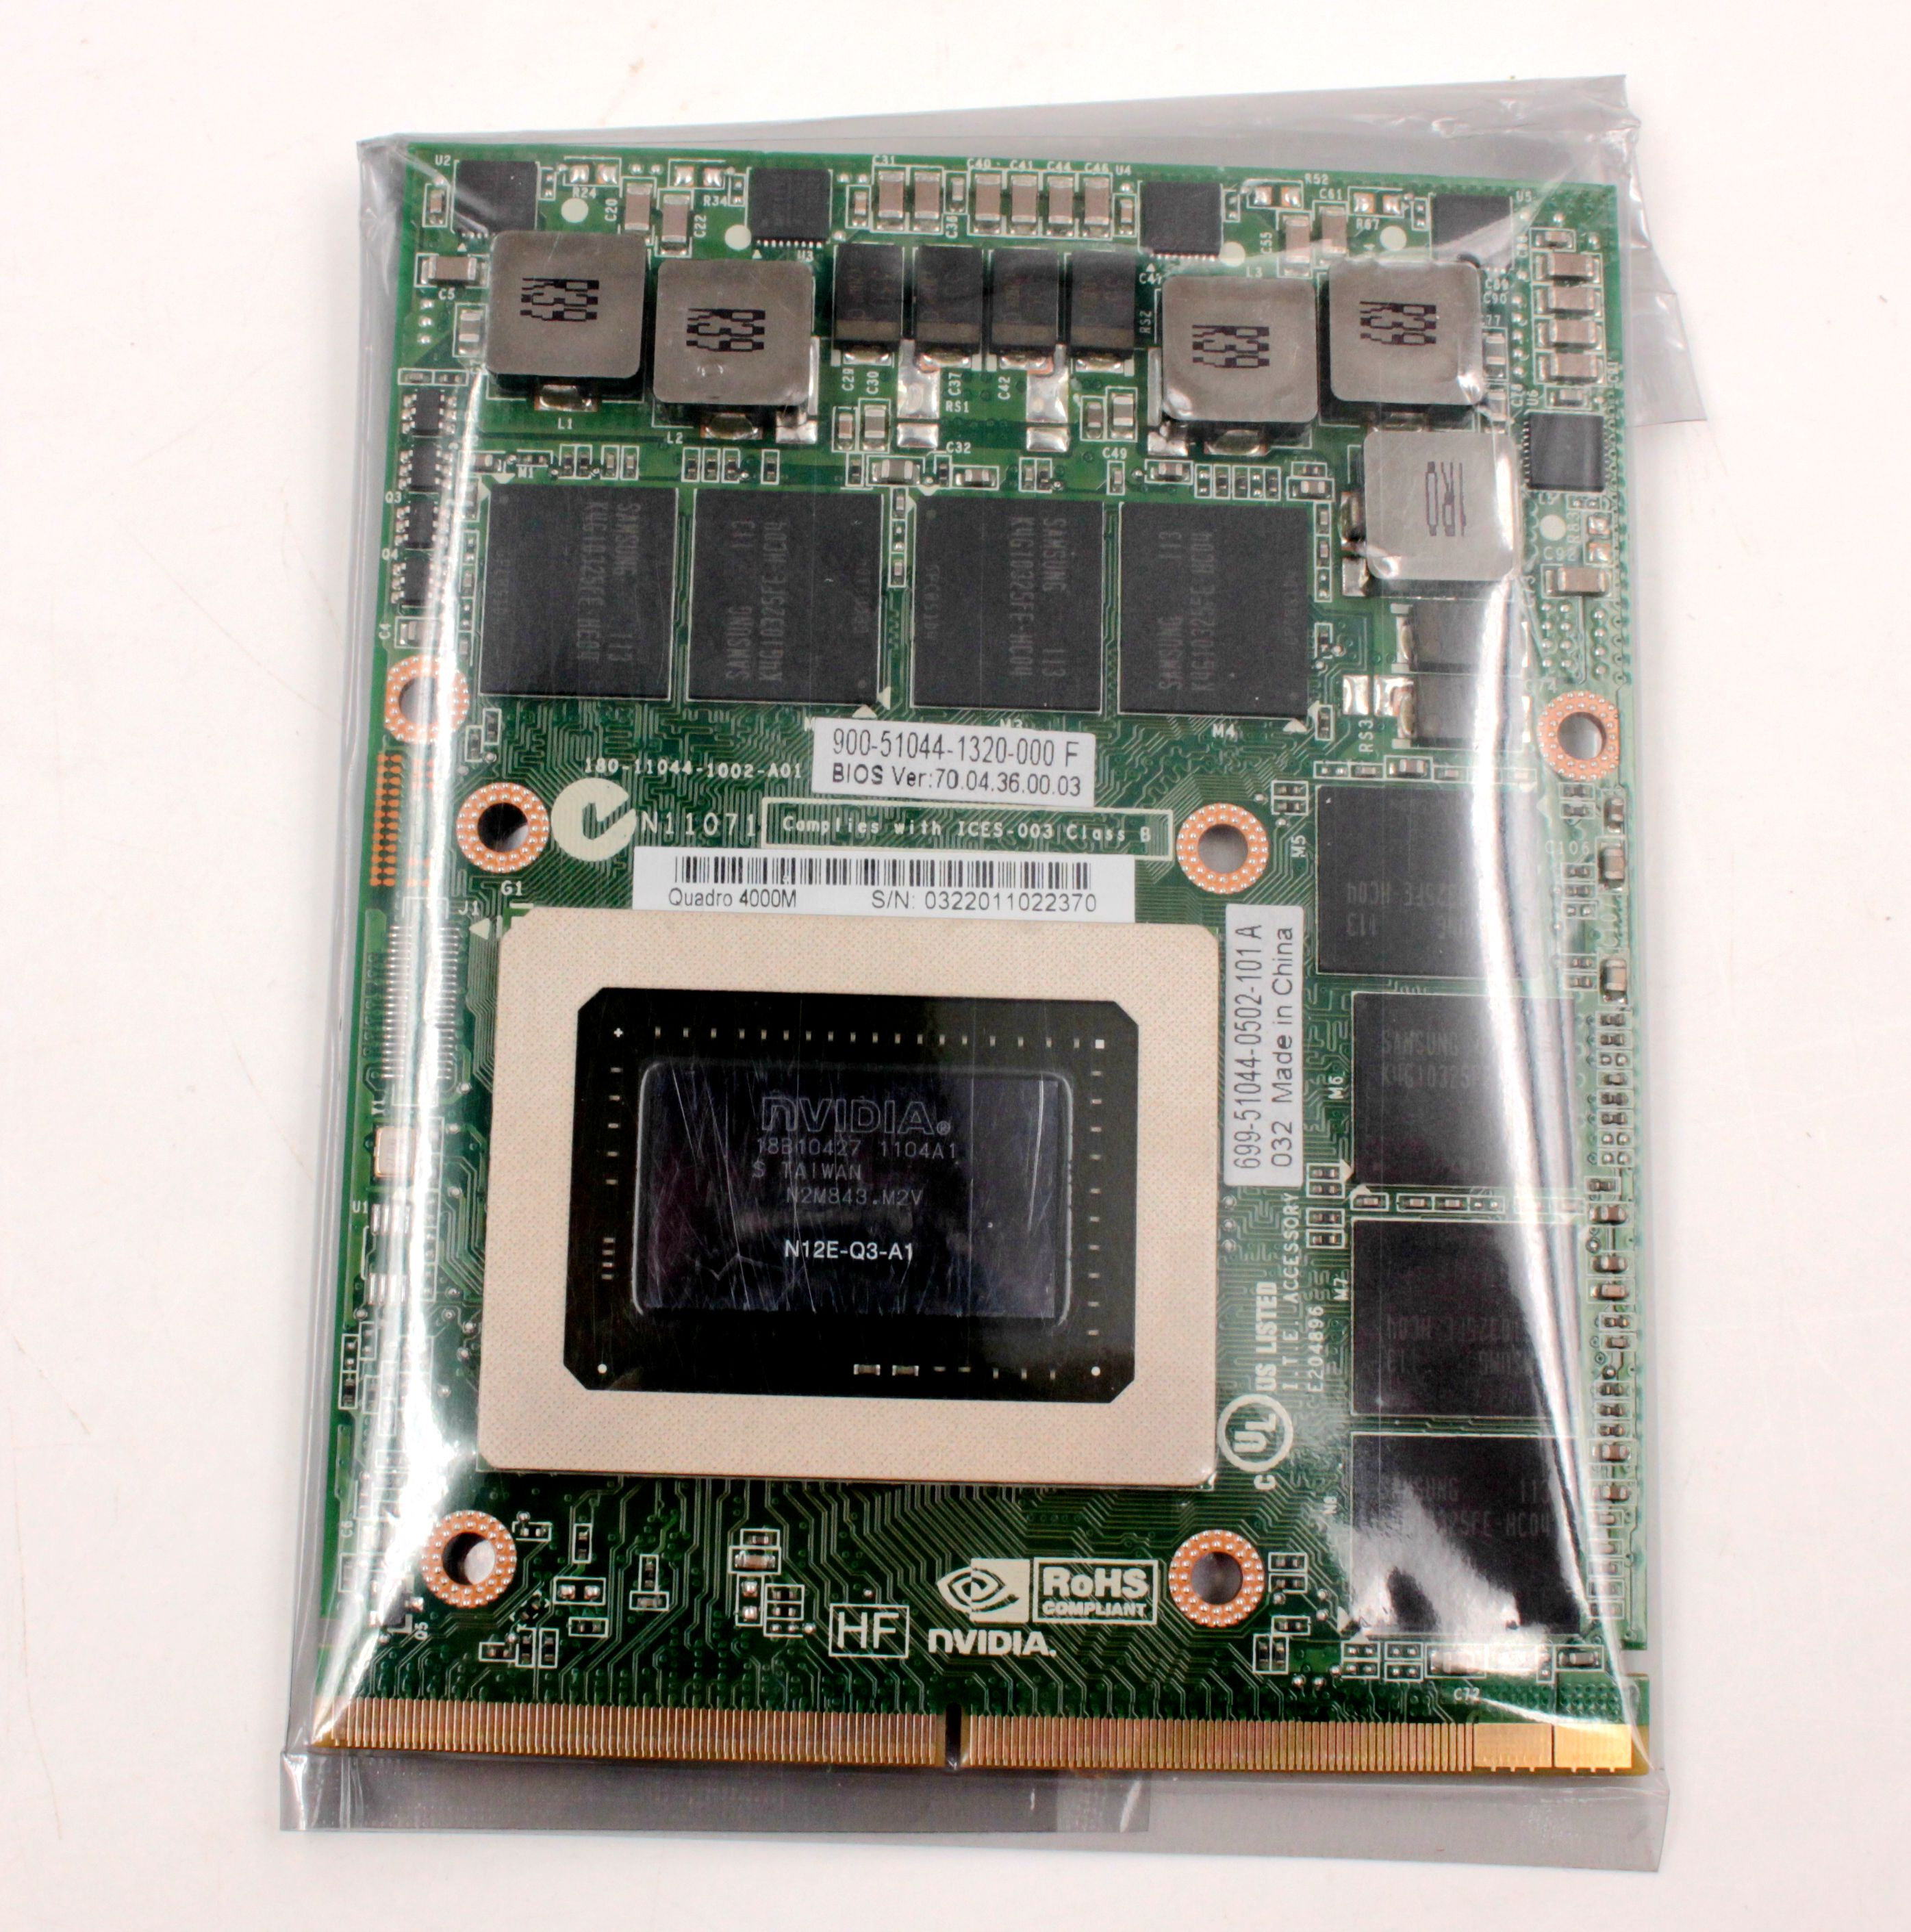 Quadro 4000M Q4000M 2G  CN-0HGXY3 HGXY3  Notebooks Card N12E-Q3-A1 New Original